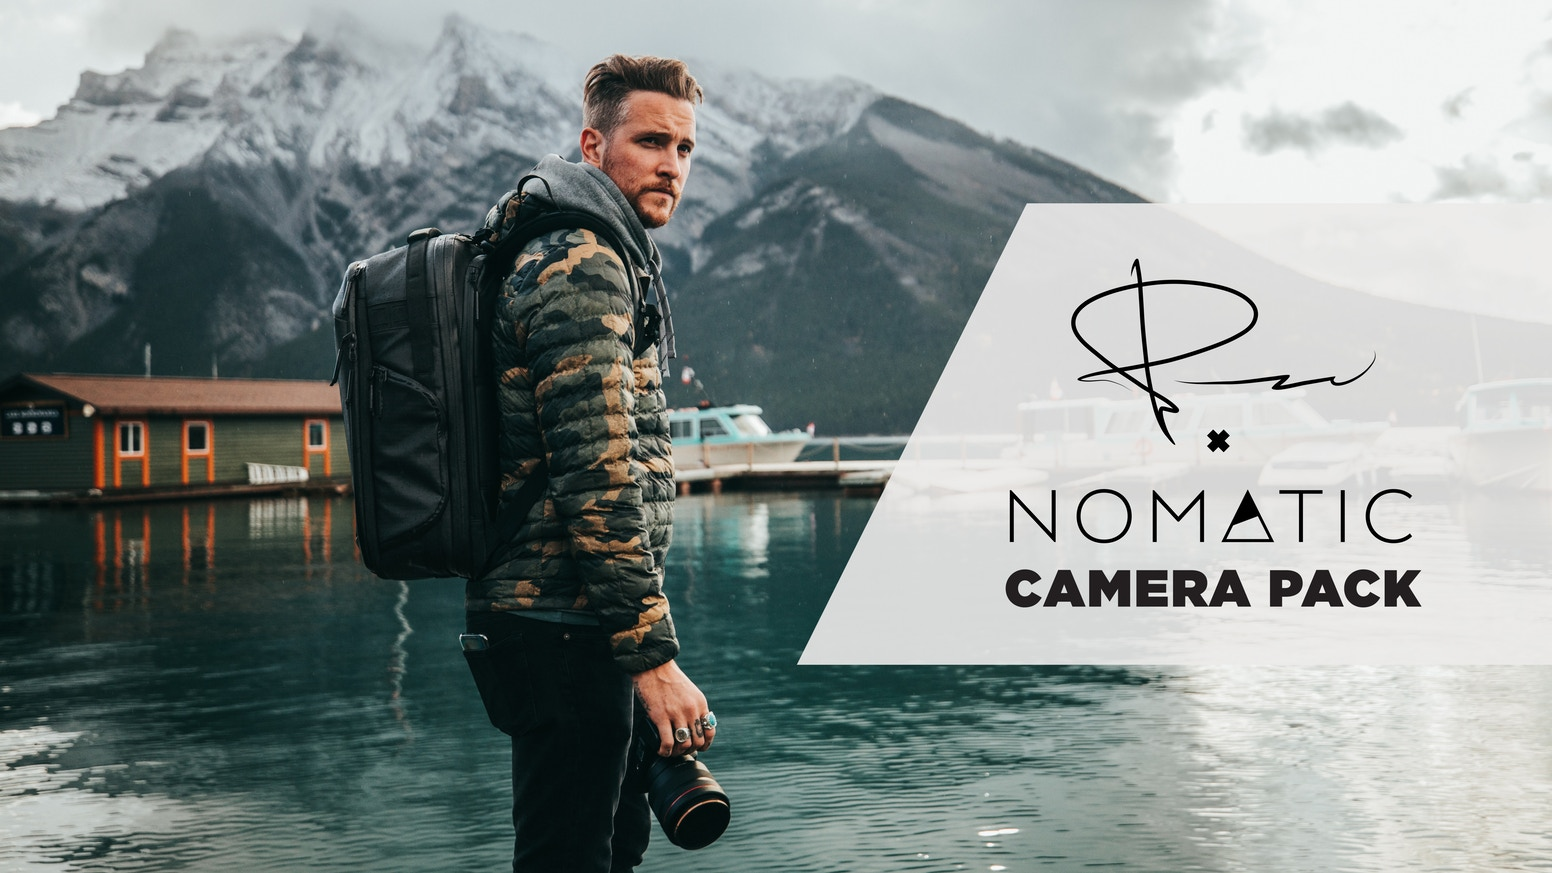 Peter McKinnon Nomatic Camera Bag 3 Month Review